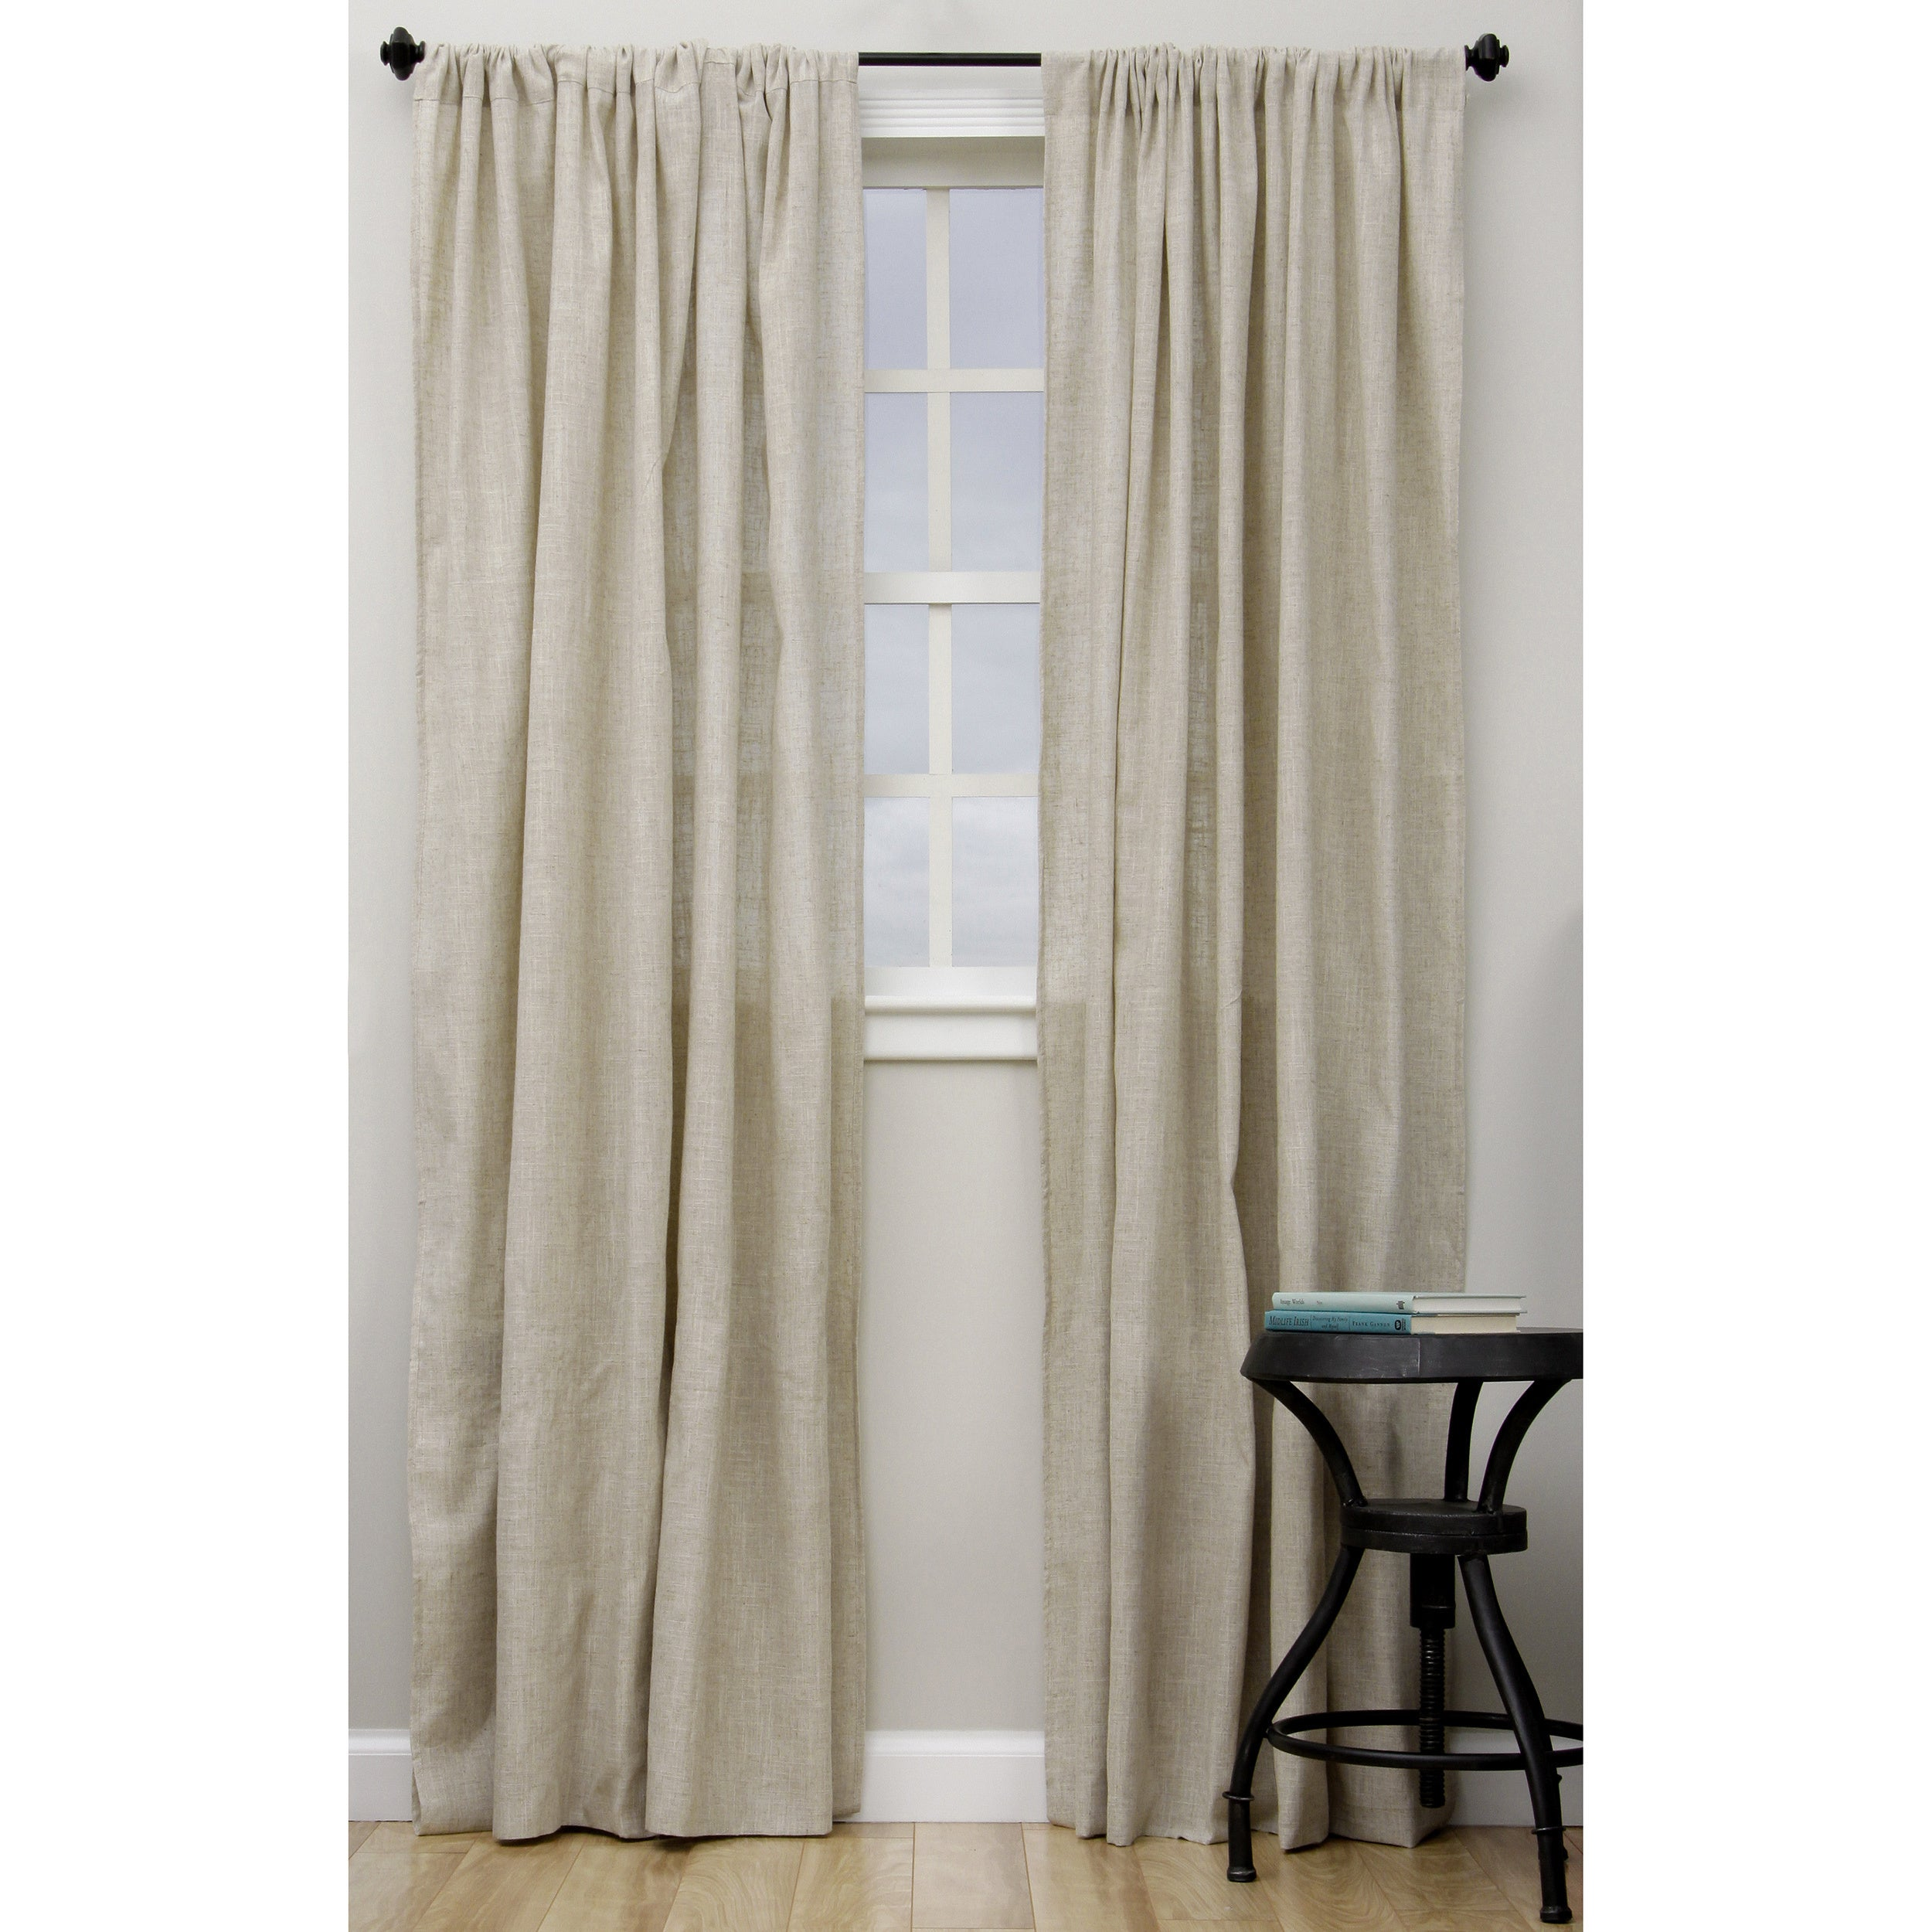 curtain blind bronze at blackout for decoration inch ideas installation curtains depot beautiful cost pretty home corn using rod panels